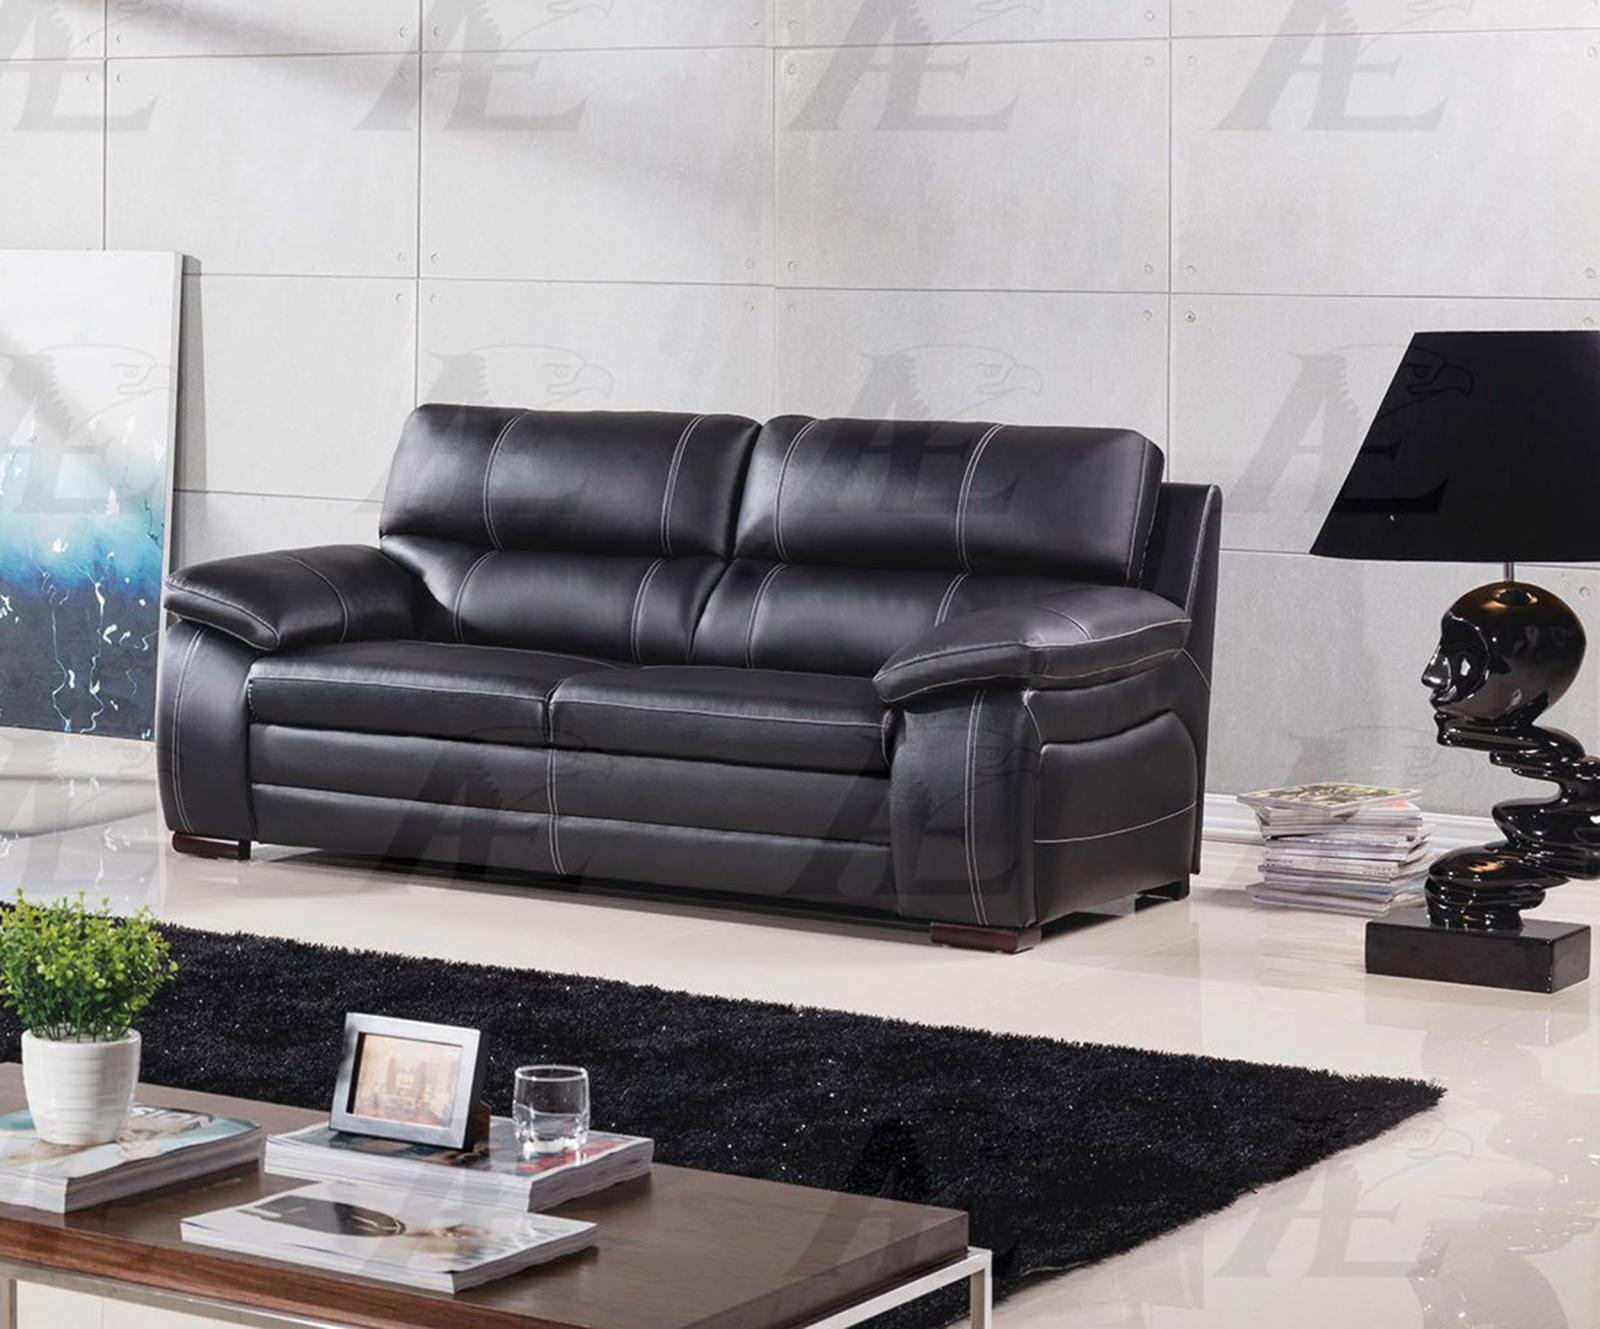 American Eagle EK-B520-BK Black Sofa Genuine Leather